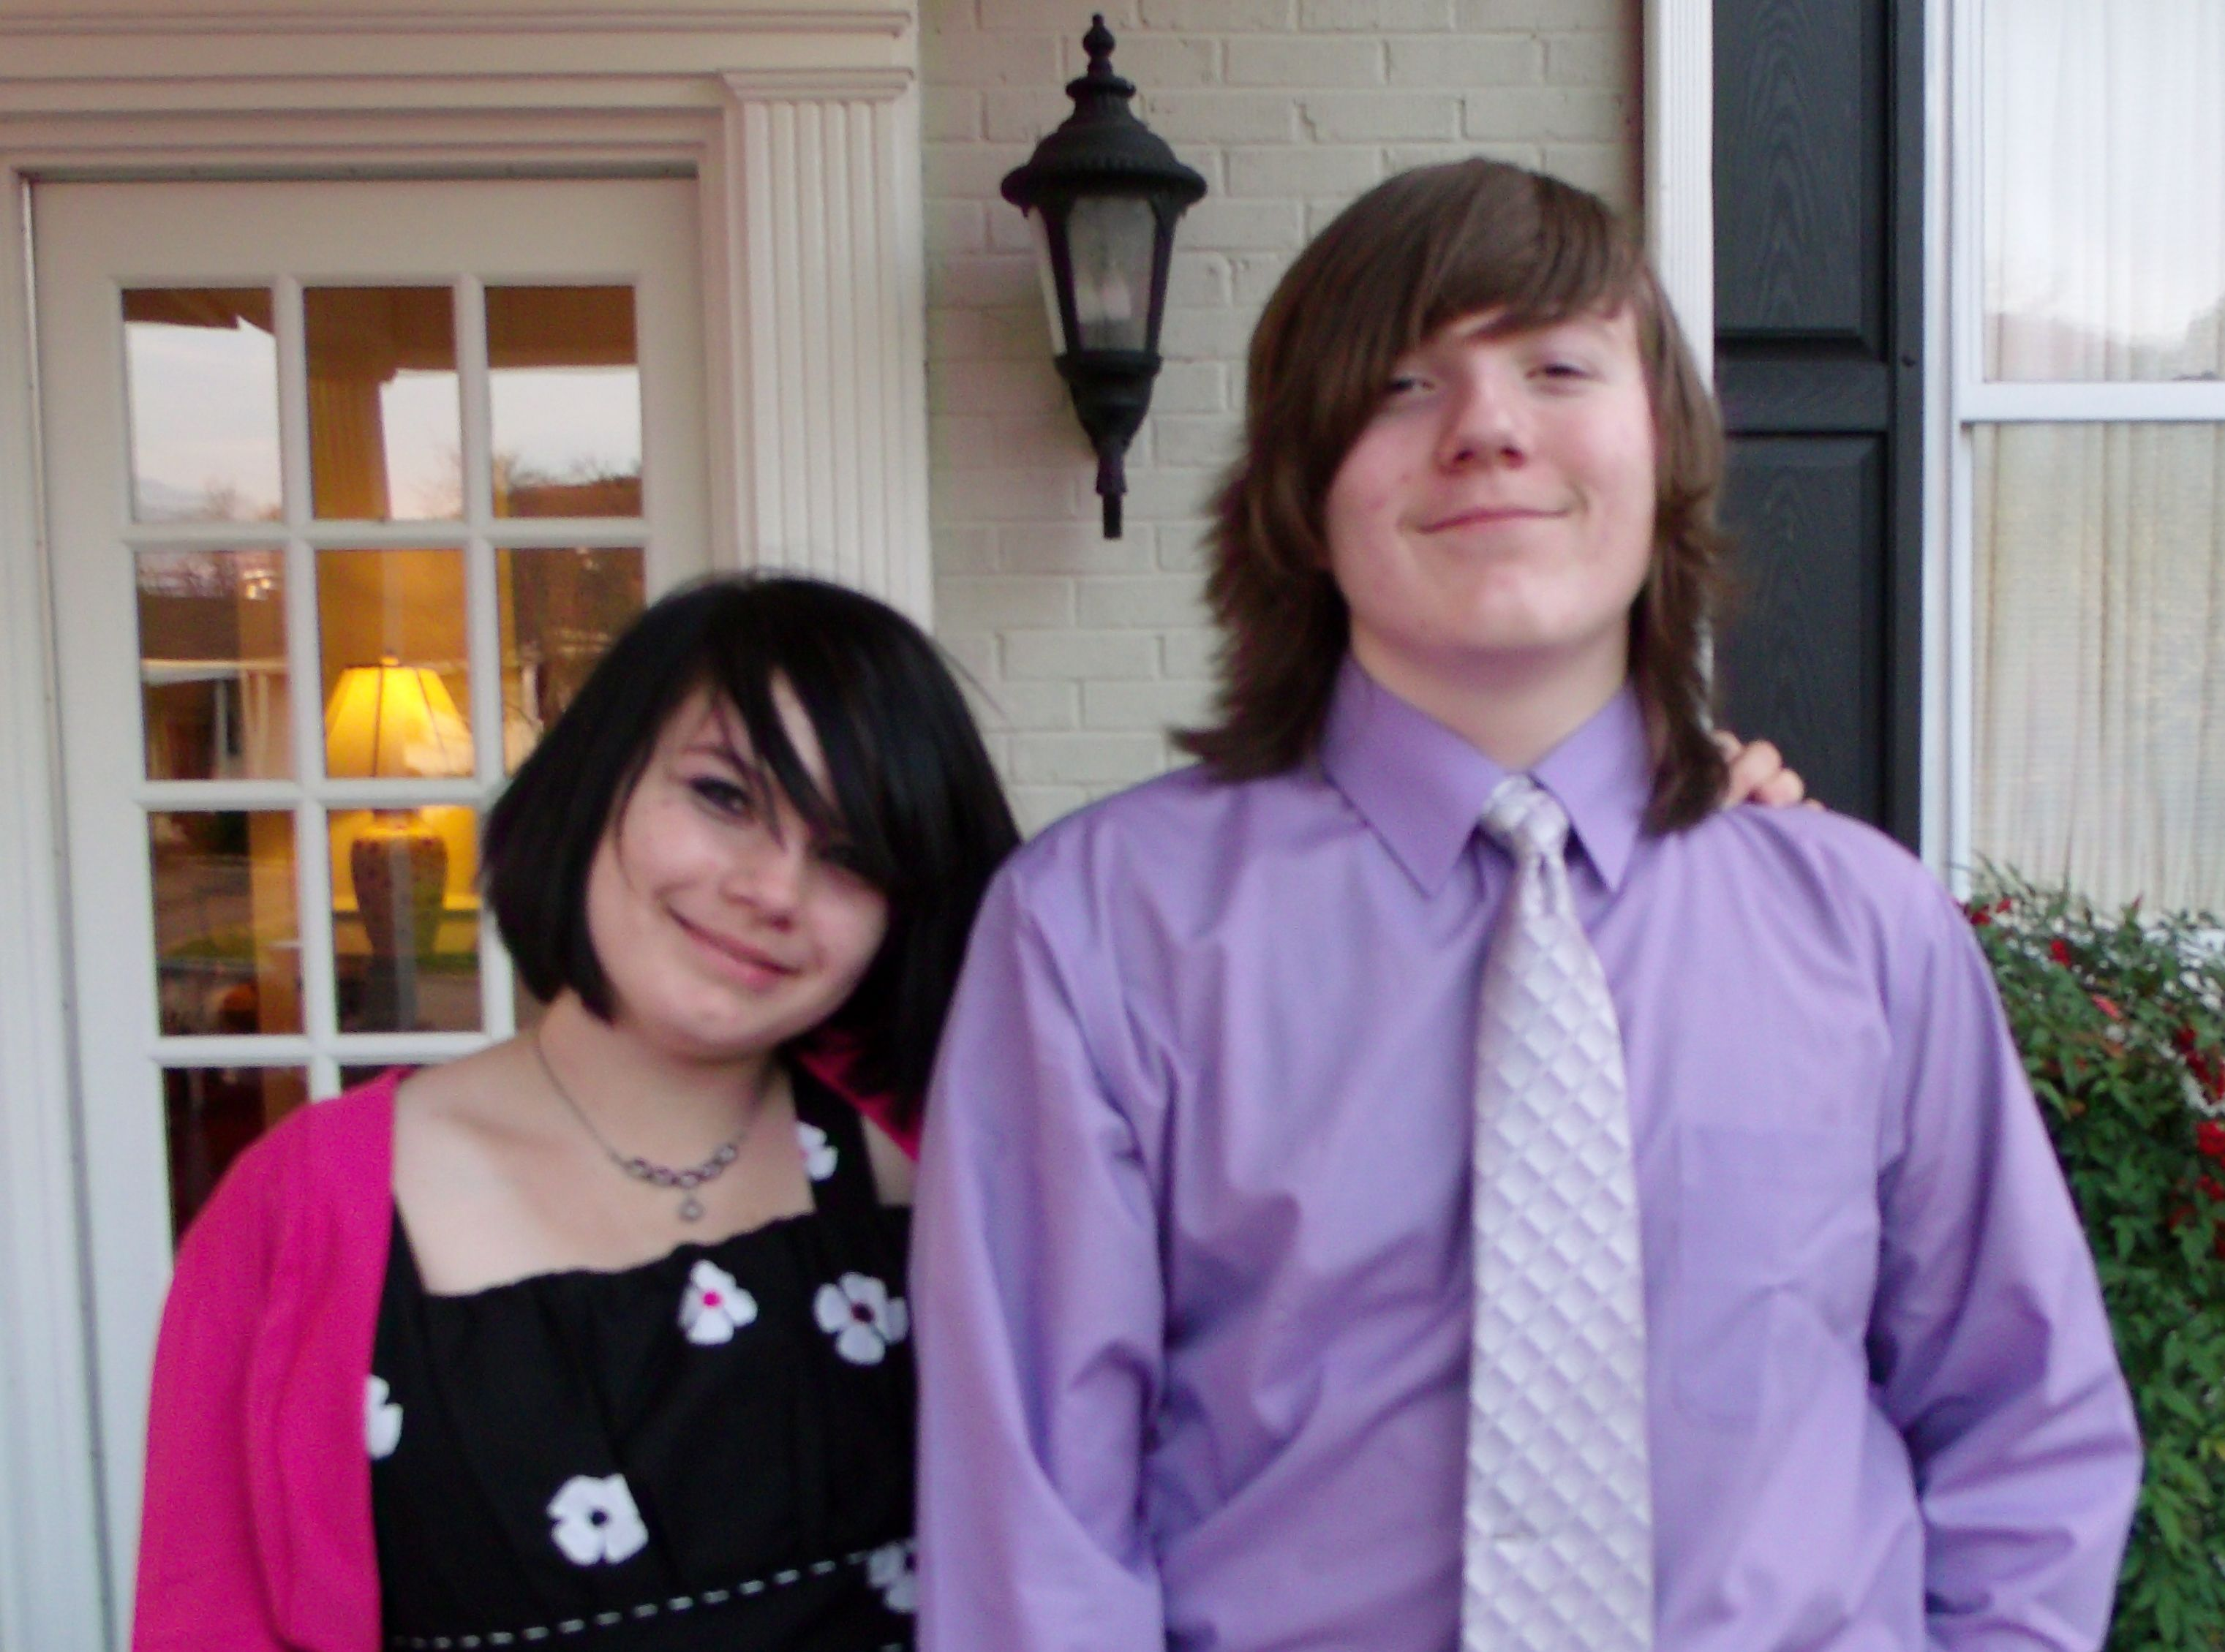 The Brat and The Boy now as teenagers